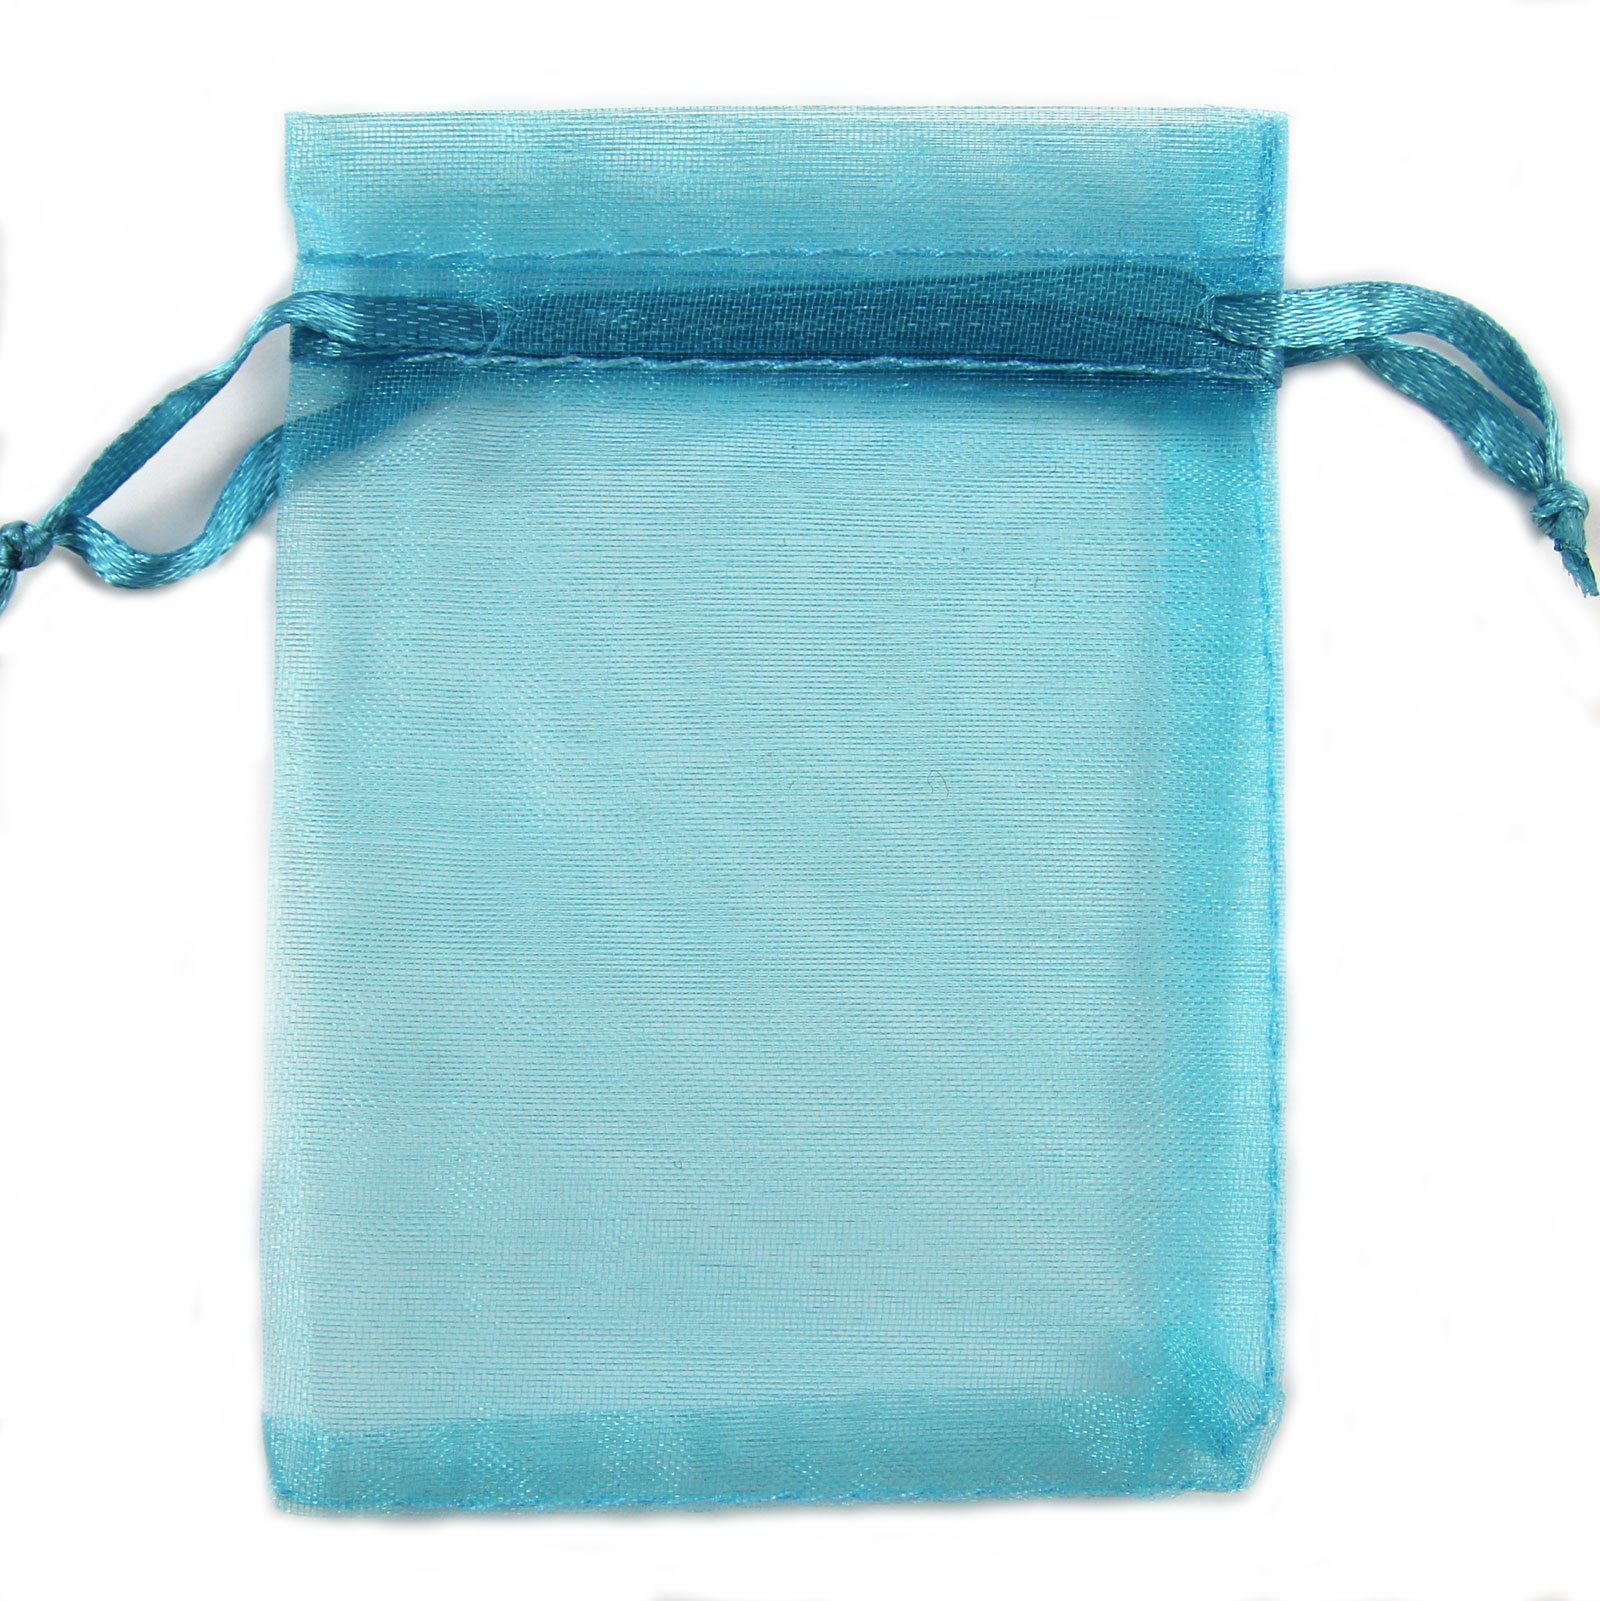 7x9cm-Premium-Organza-Wedding-Favour-Jewellery-Gift-Bags-Jewellery-Candy-Pouches